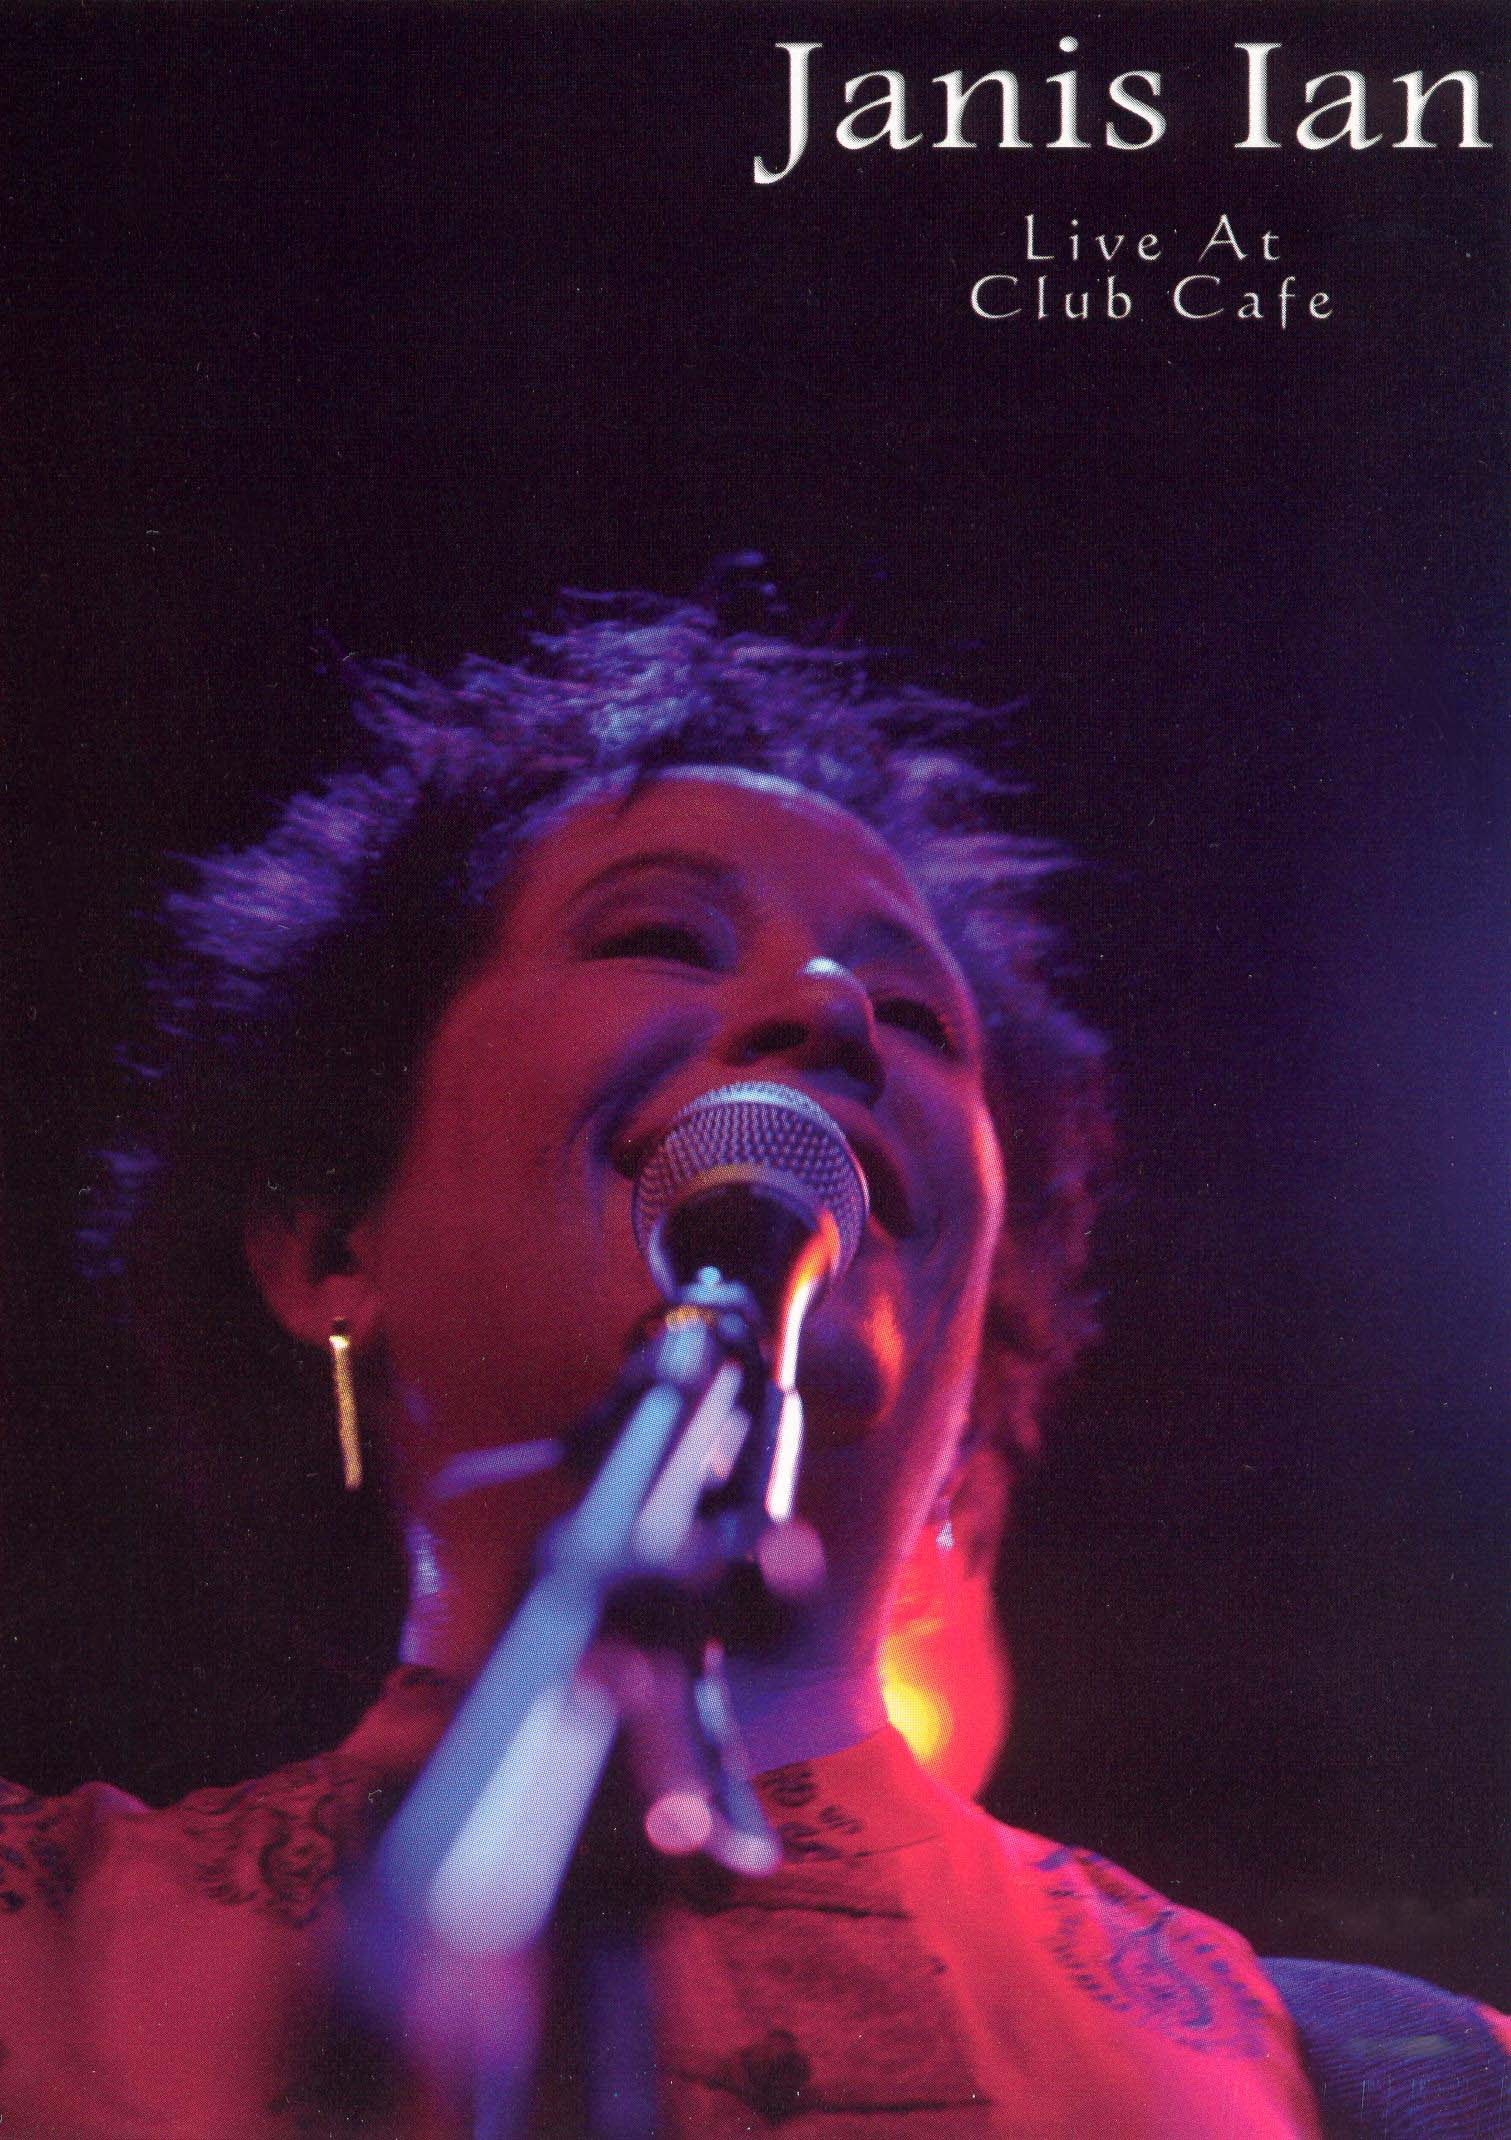 Janis Ian: Live At Club Cafe